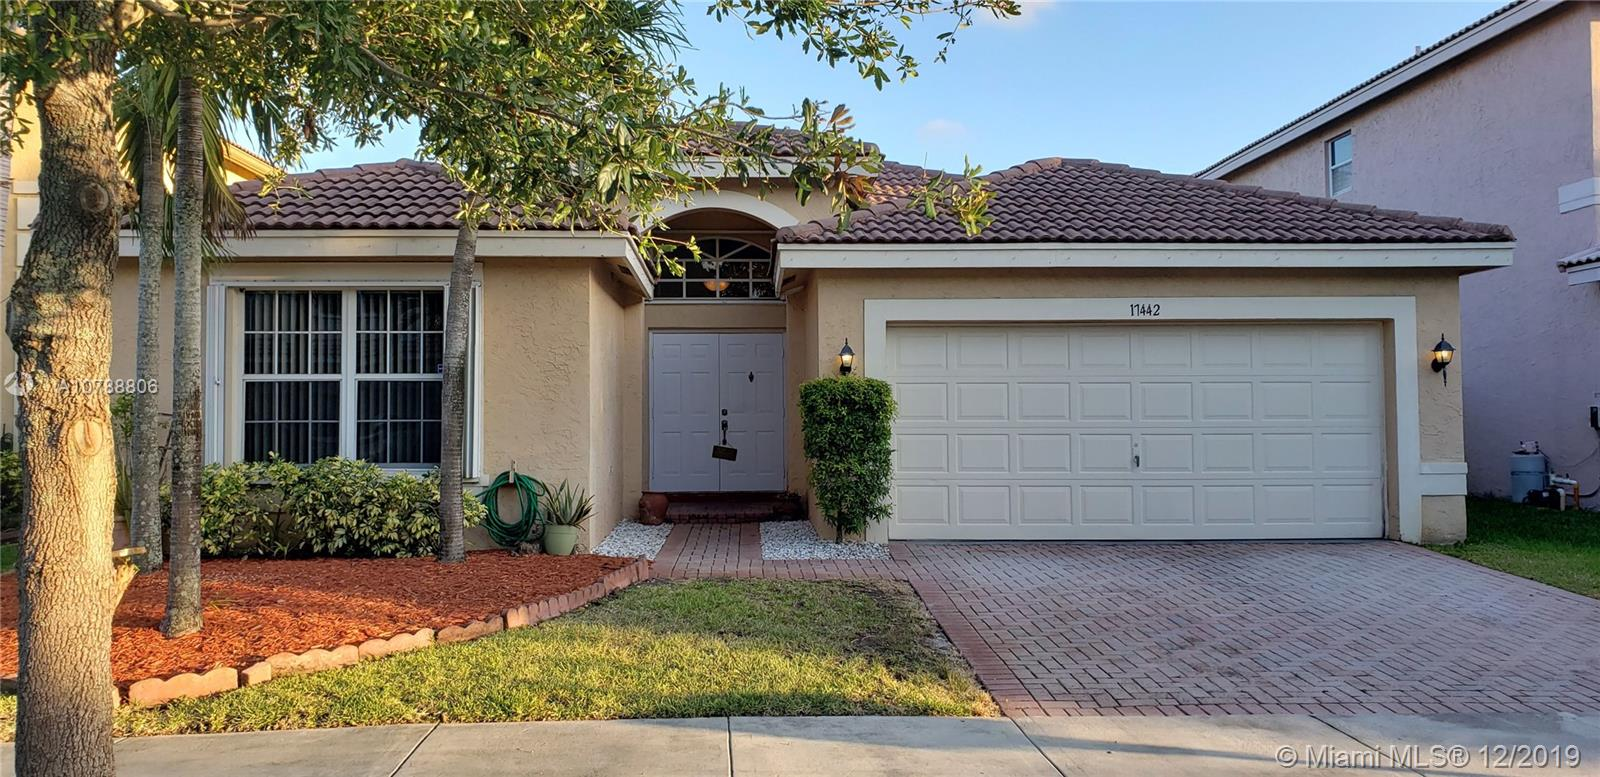 17442 SW 33rd St  For Sale A10788806, FL